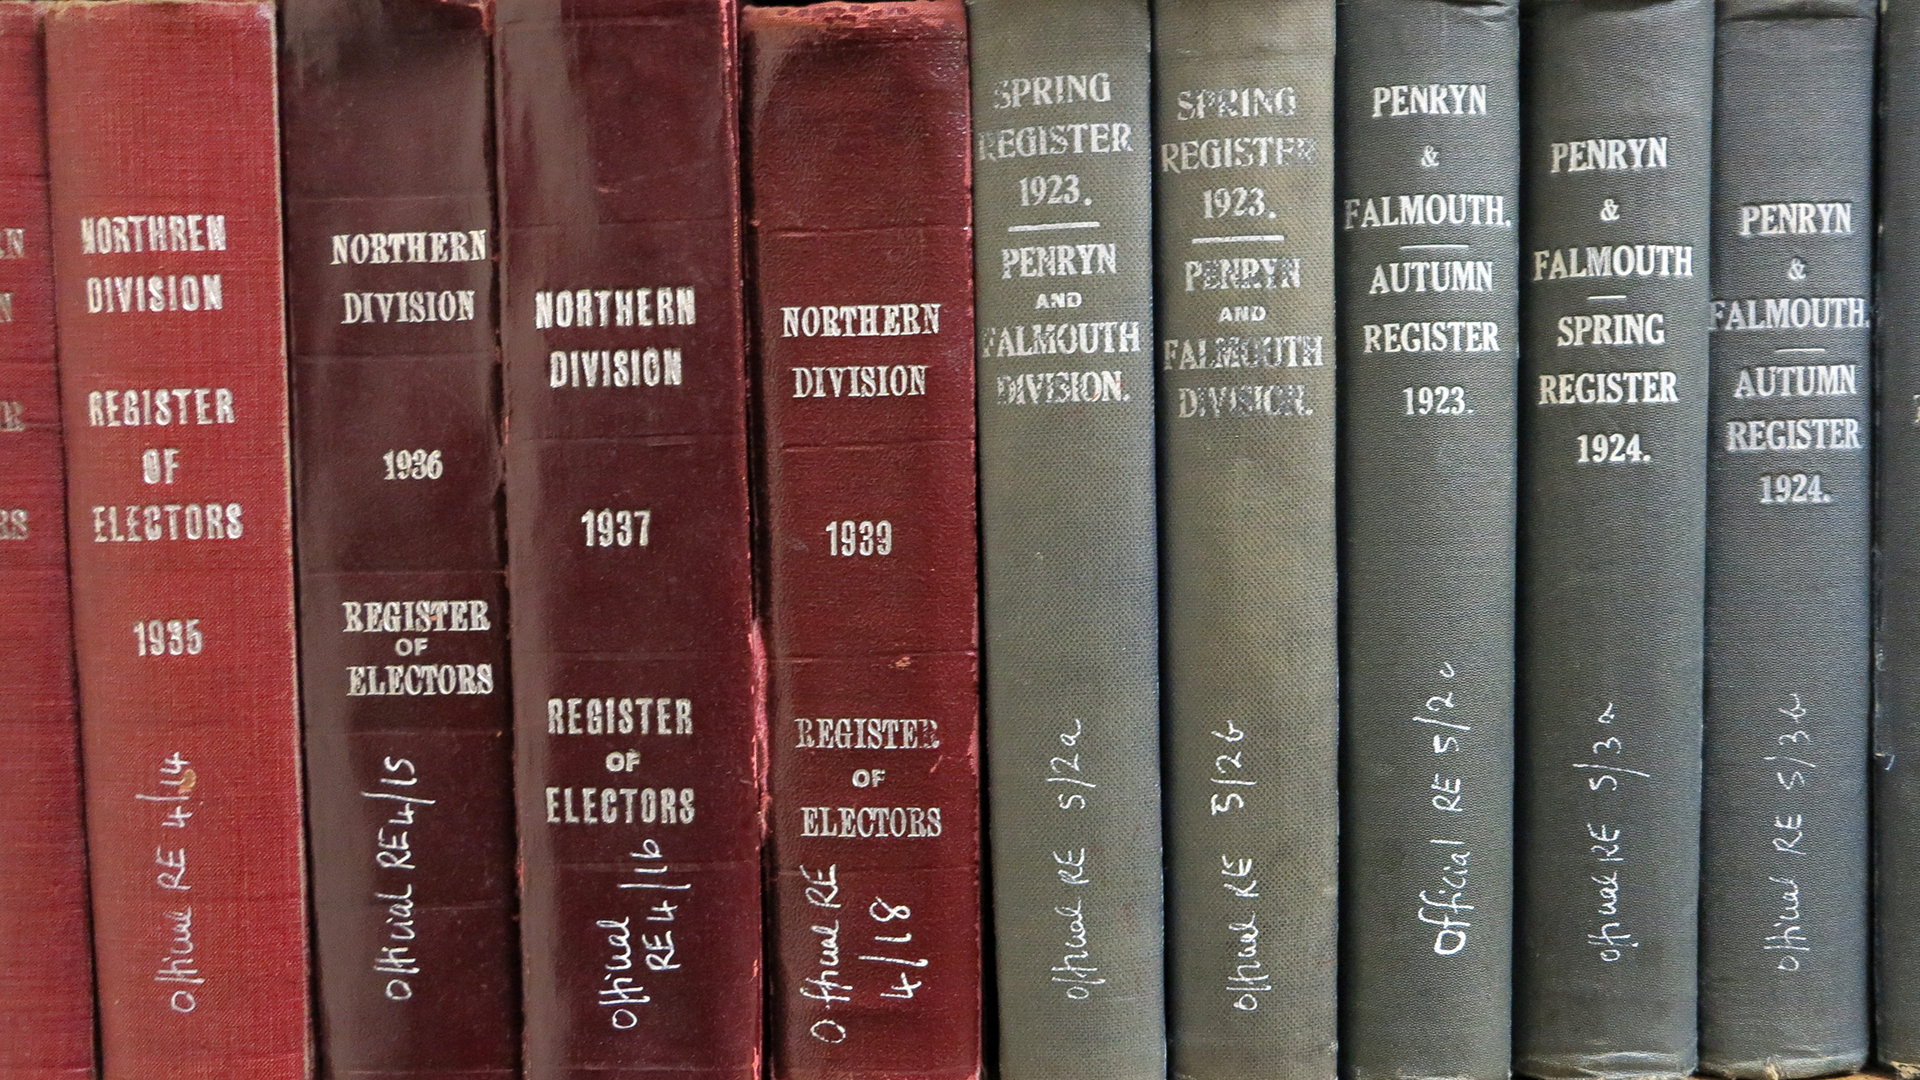 Colour photograph of book spines on a shelf.